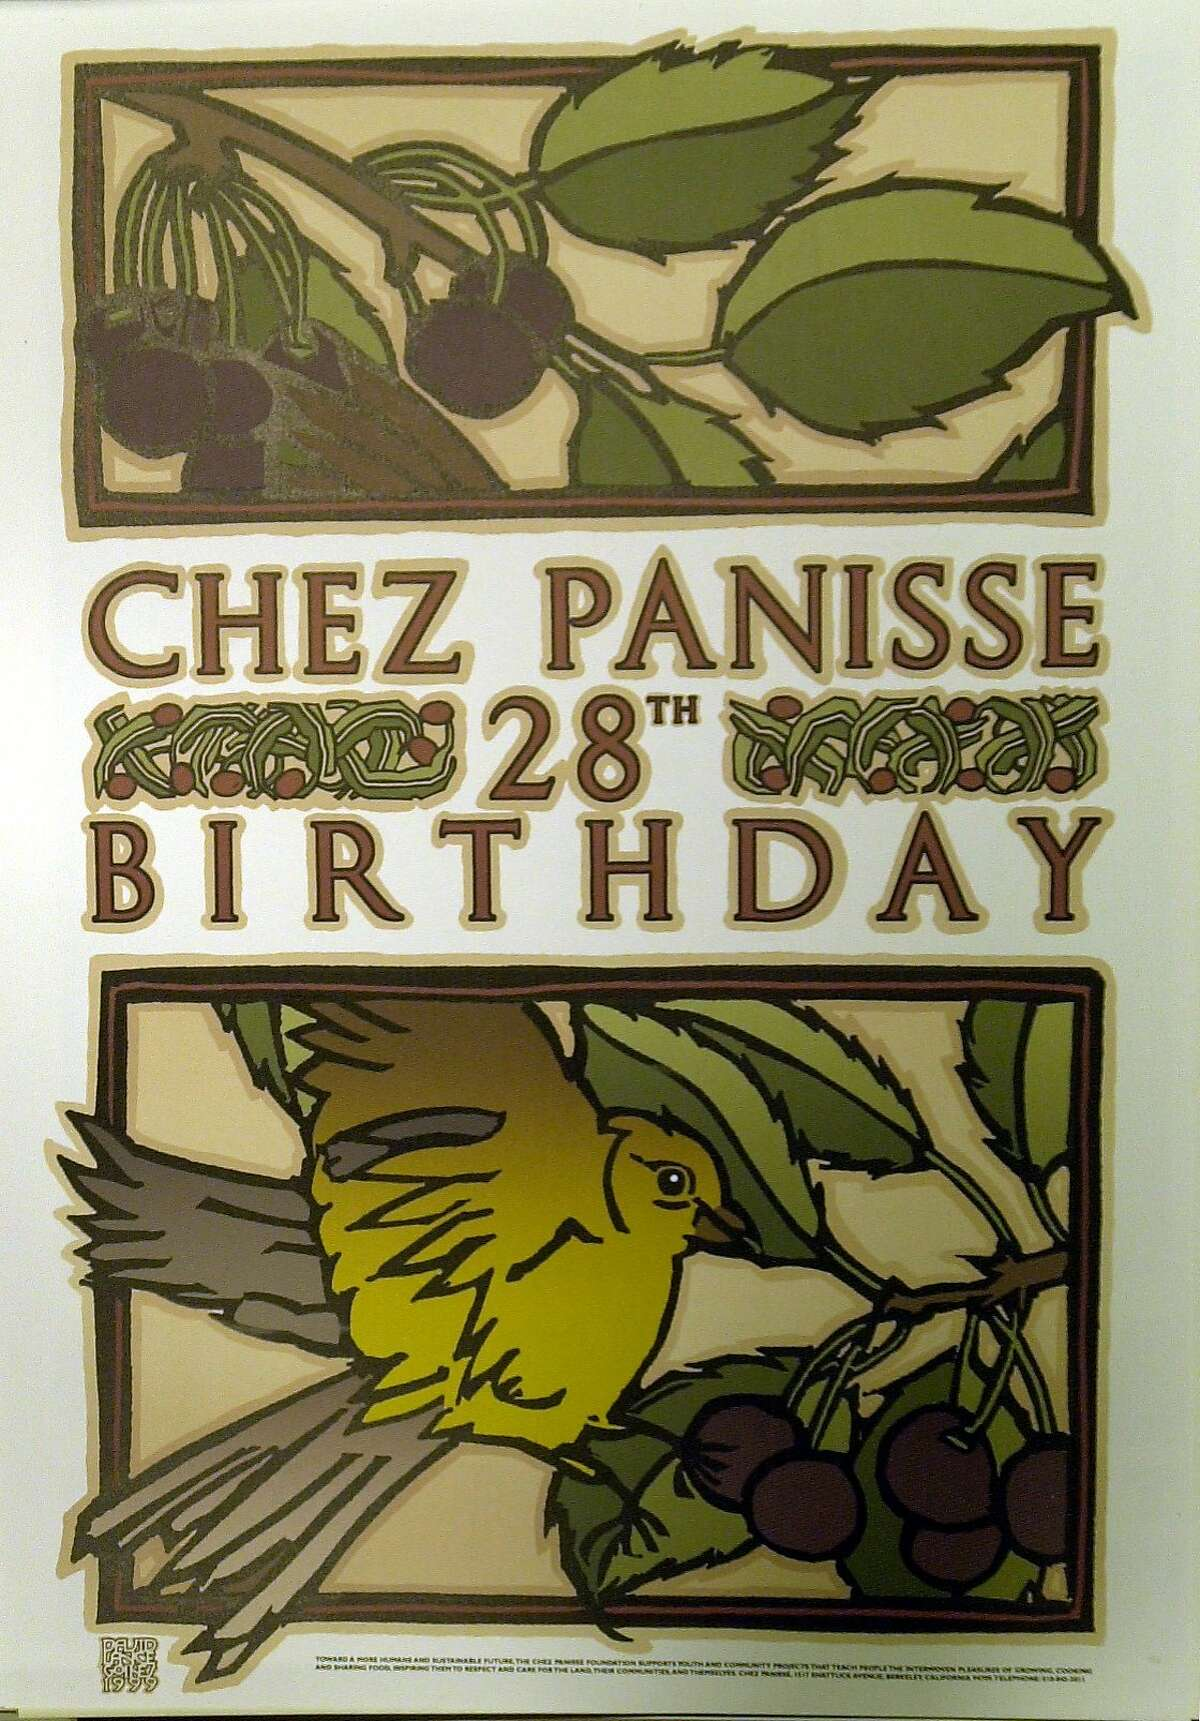 GOINES-C-14AUG01-FD-JRS-Copy shots Chez Panisse menus and posters by artist David Goines.